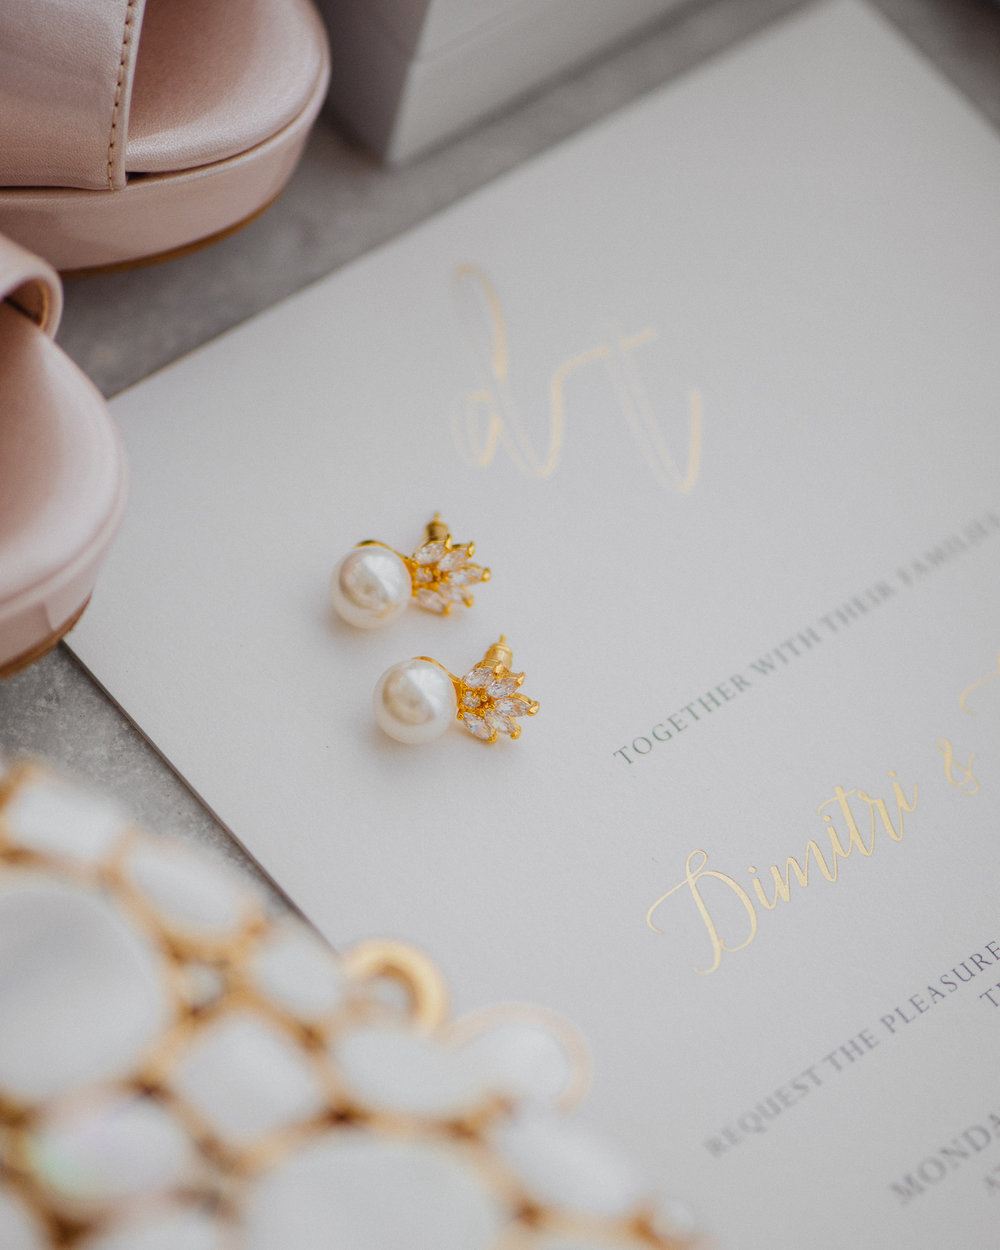 santorini-island-greece-wedding-celebration-bride-groom-wedding-stationery-invitation-welcome-gift-wedding-monograms-rocabella-hotel-silkentile-event-planning-firm